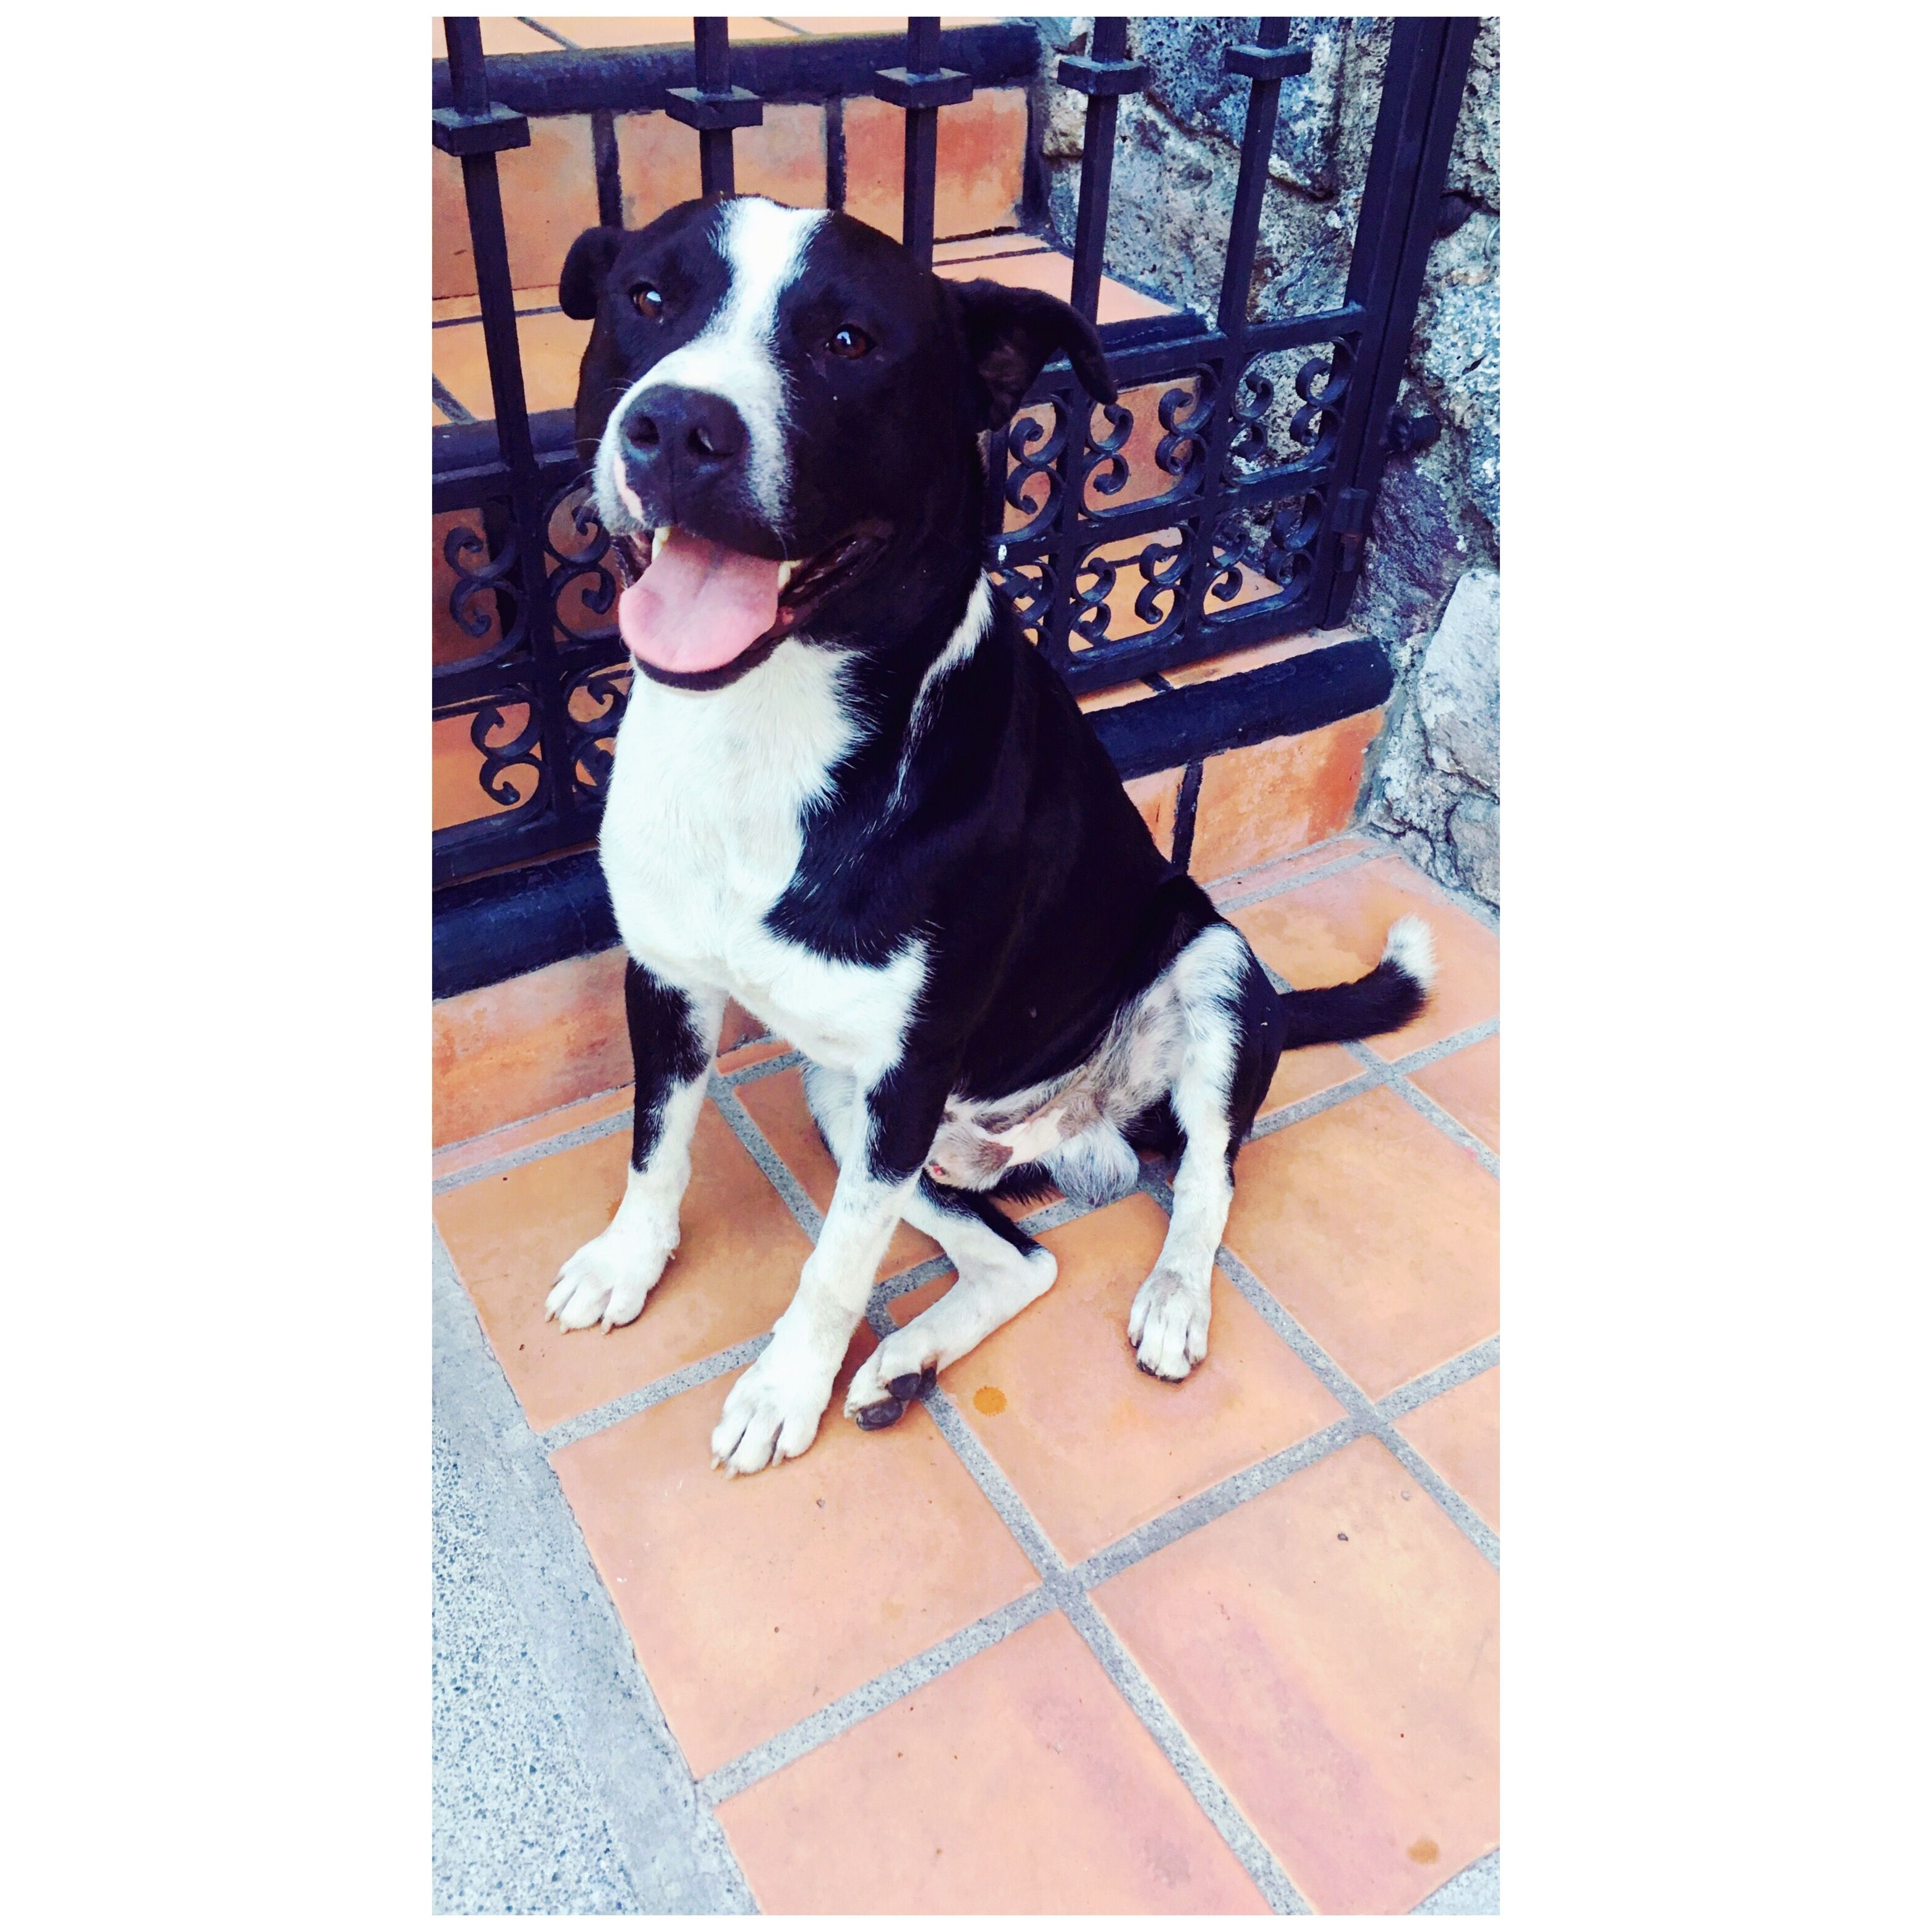 Meet Pancho! He has no family 😞 but at last he seems to be happy... 💔